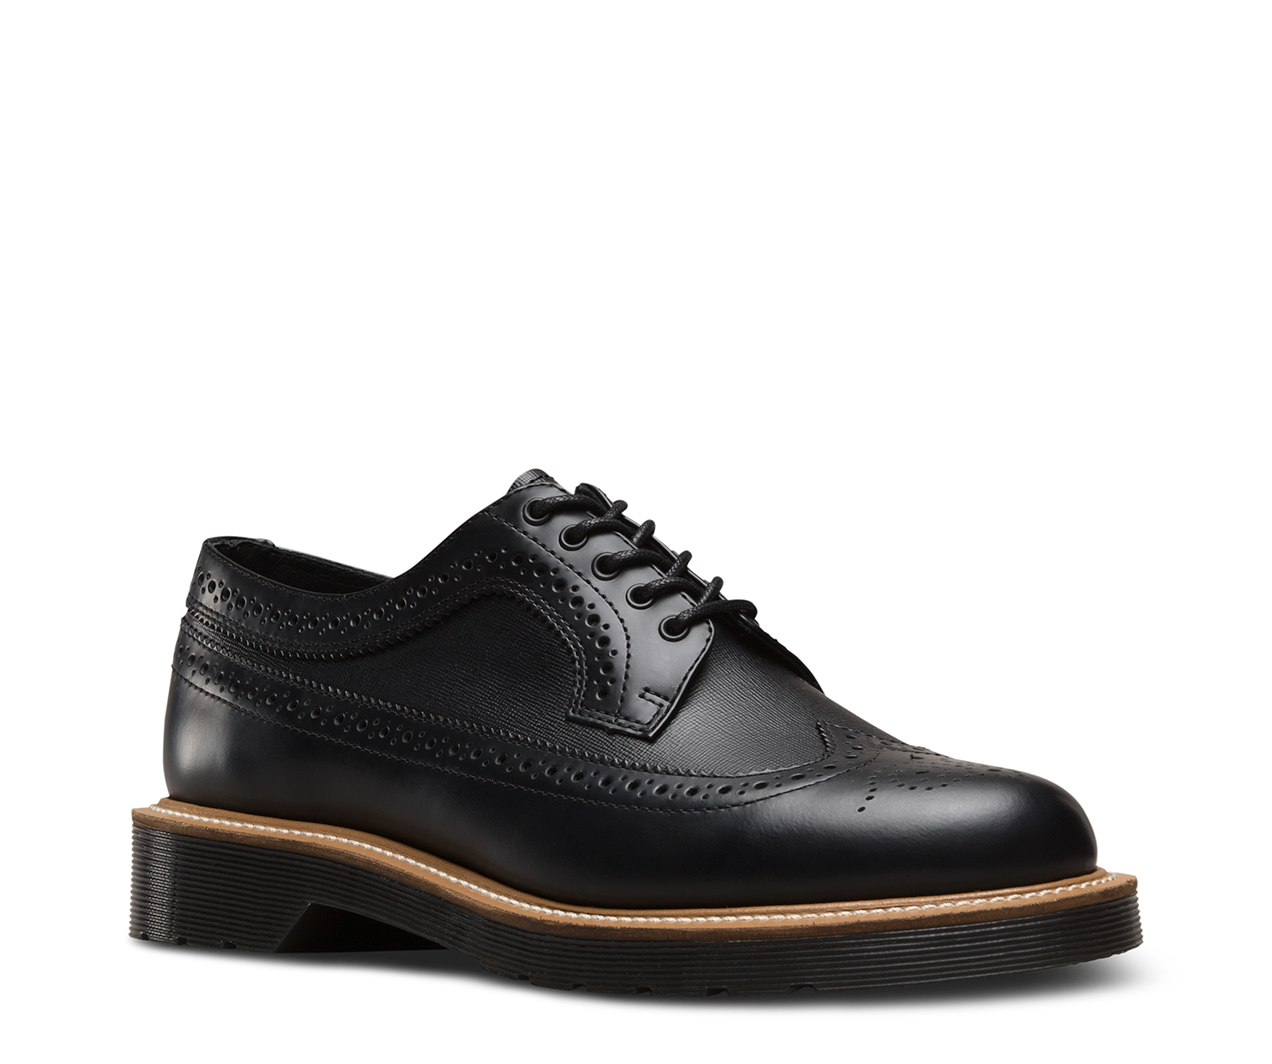 3989 Straw Mens Clearance Dr Martens Official Site